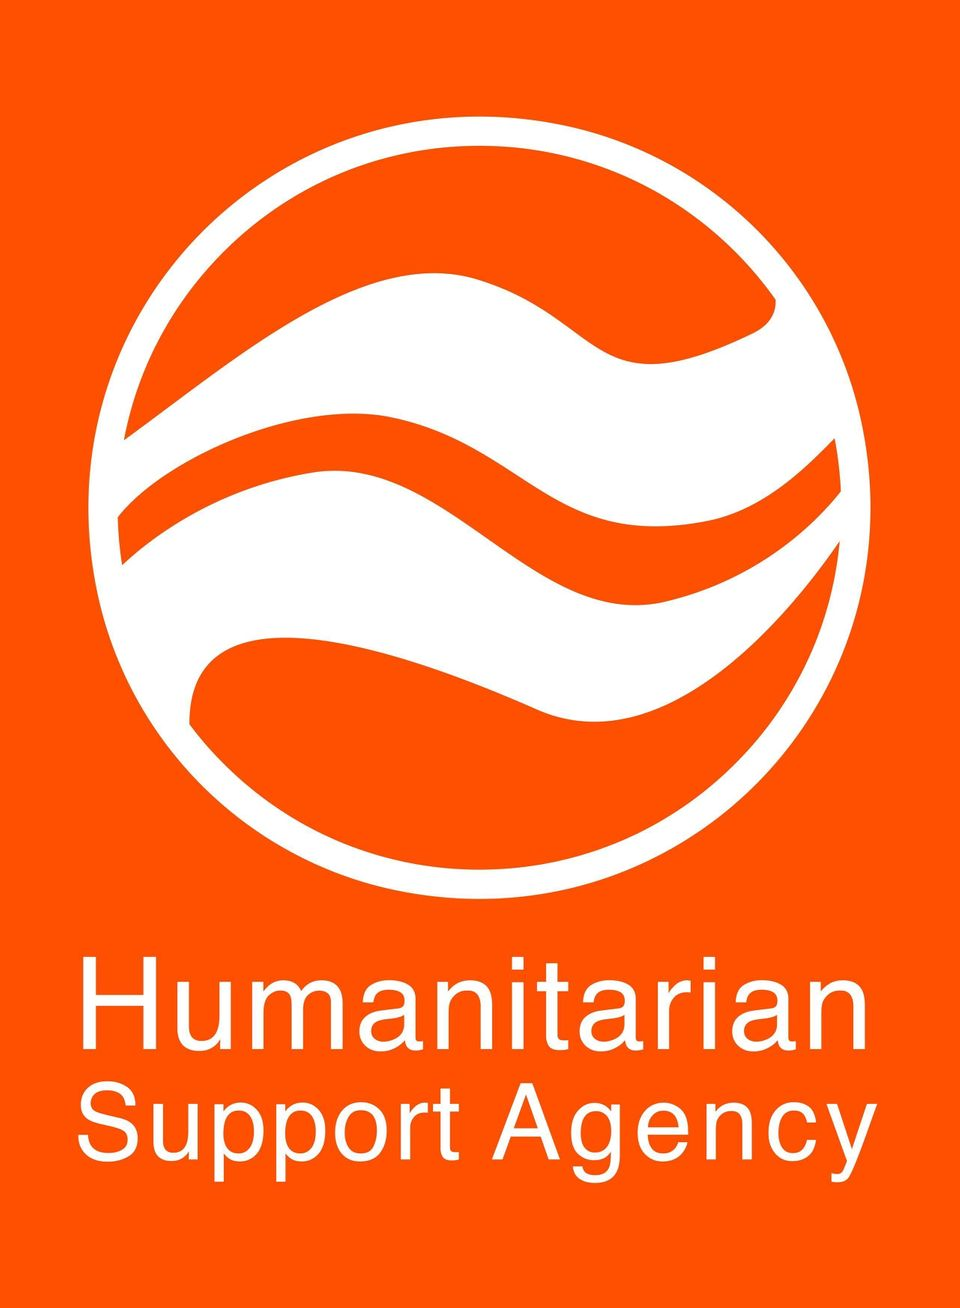 Humanitarian Support Agency. Από την Ισπανία στην Ελλάδα με